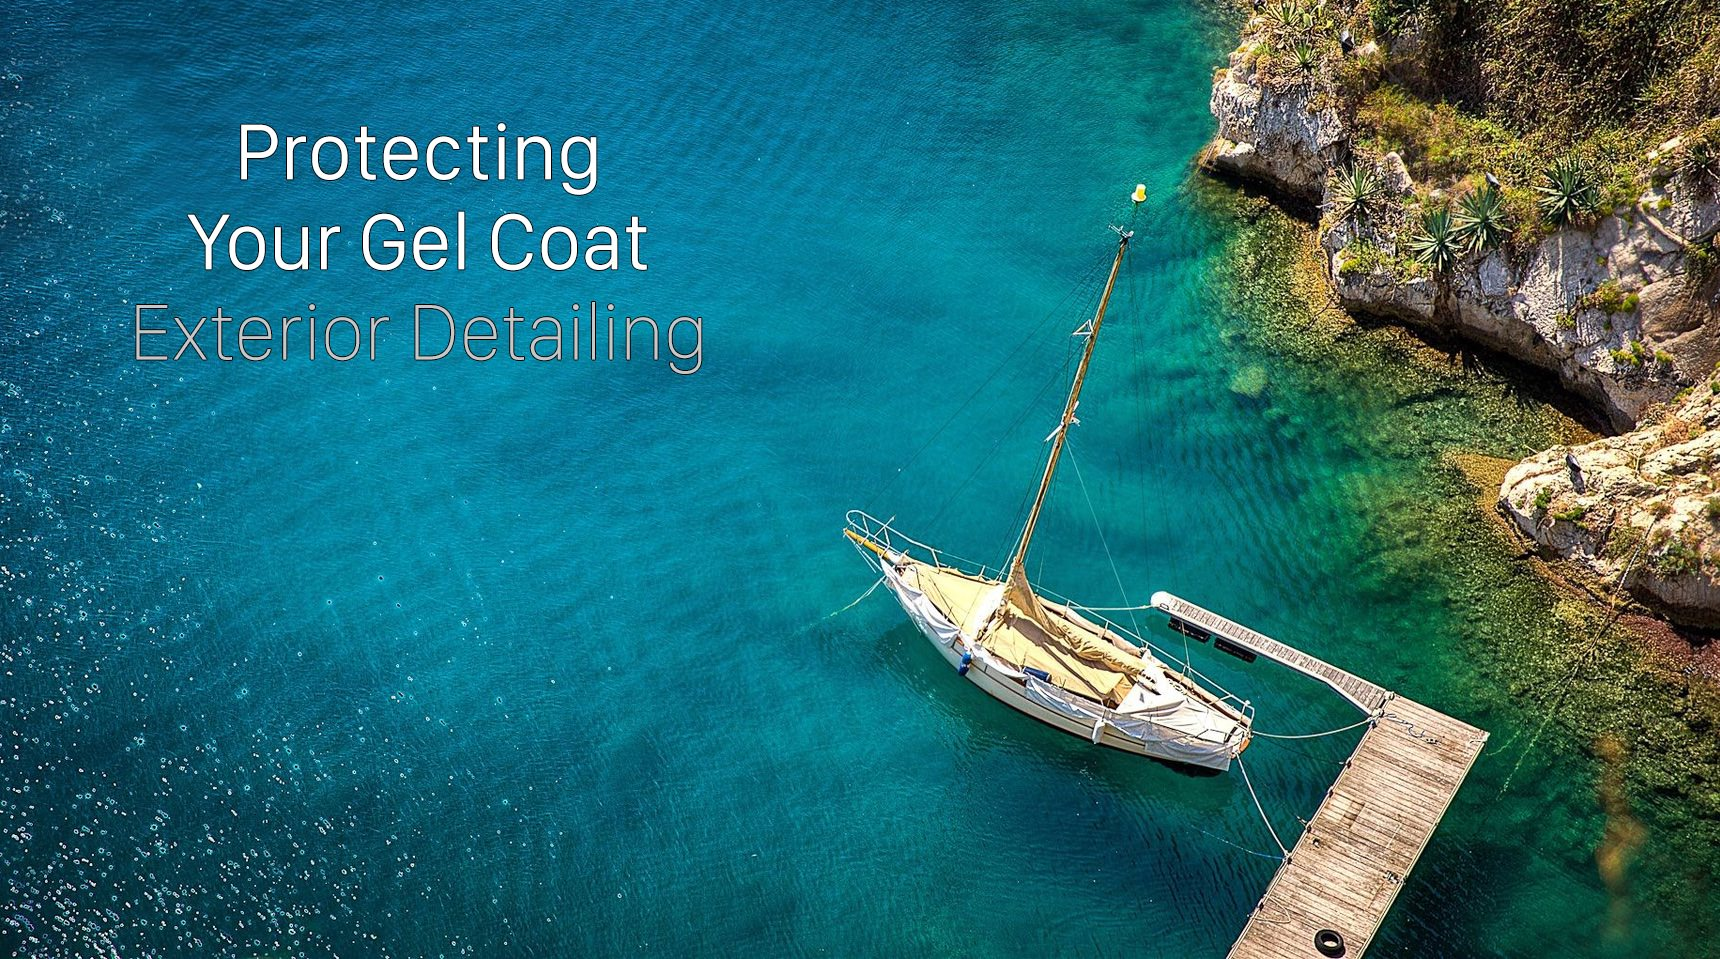 Protecting Your Gel Coat